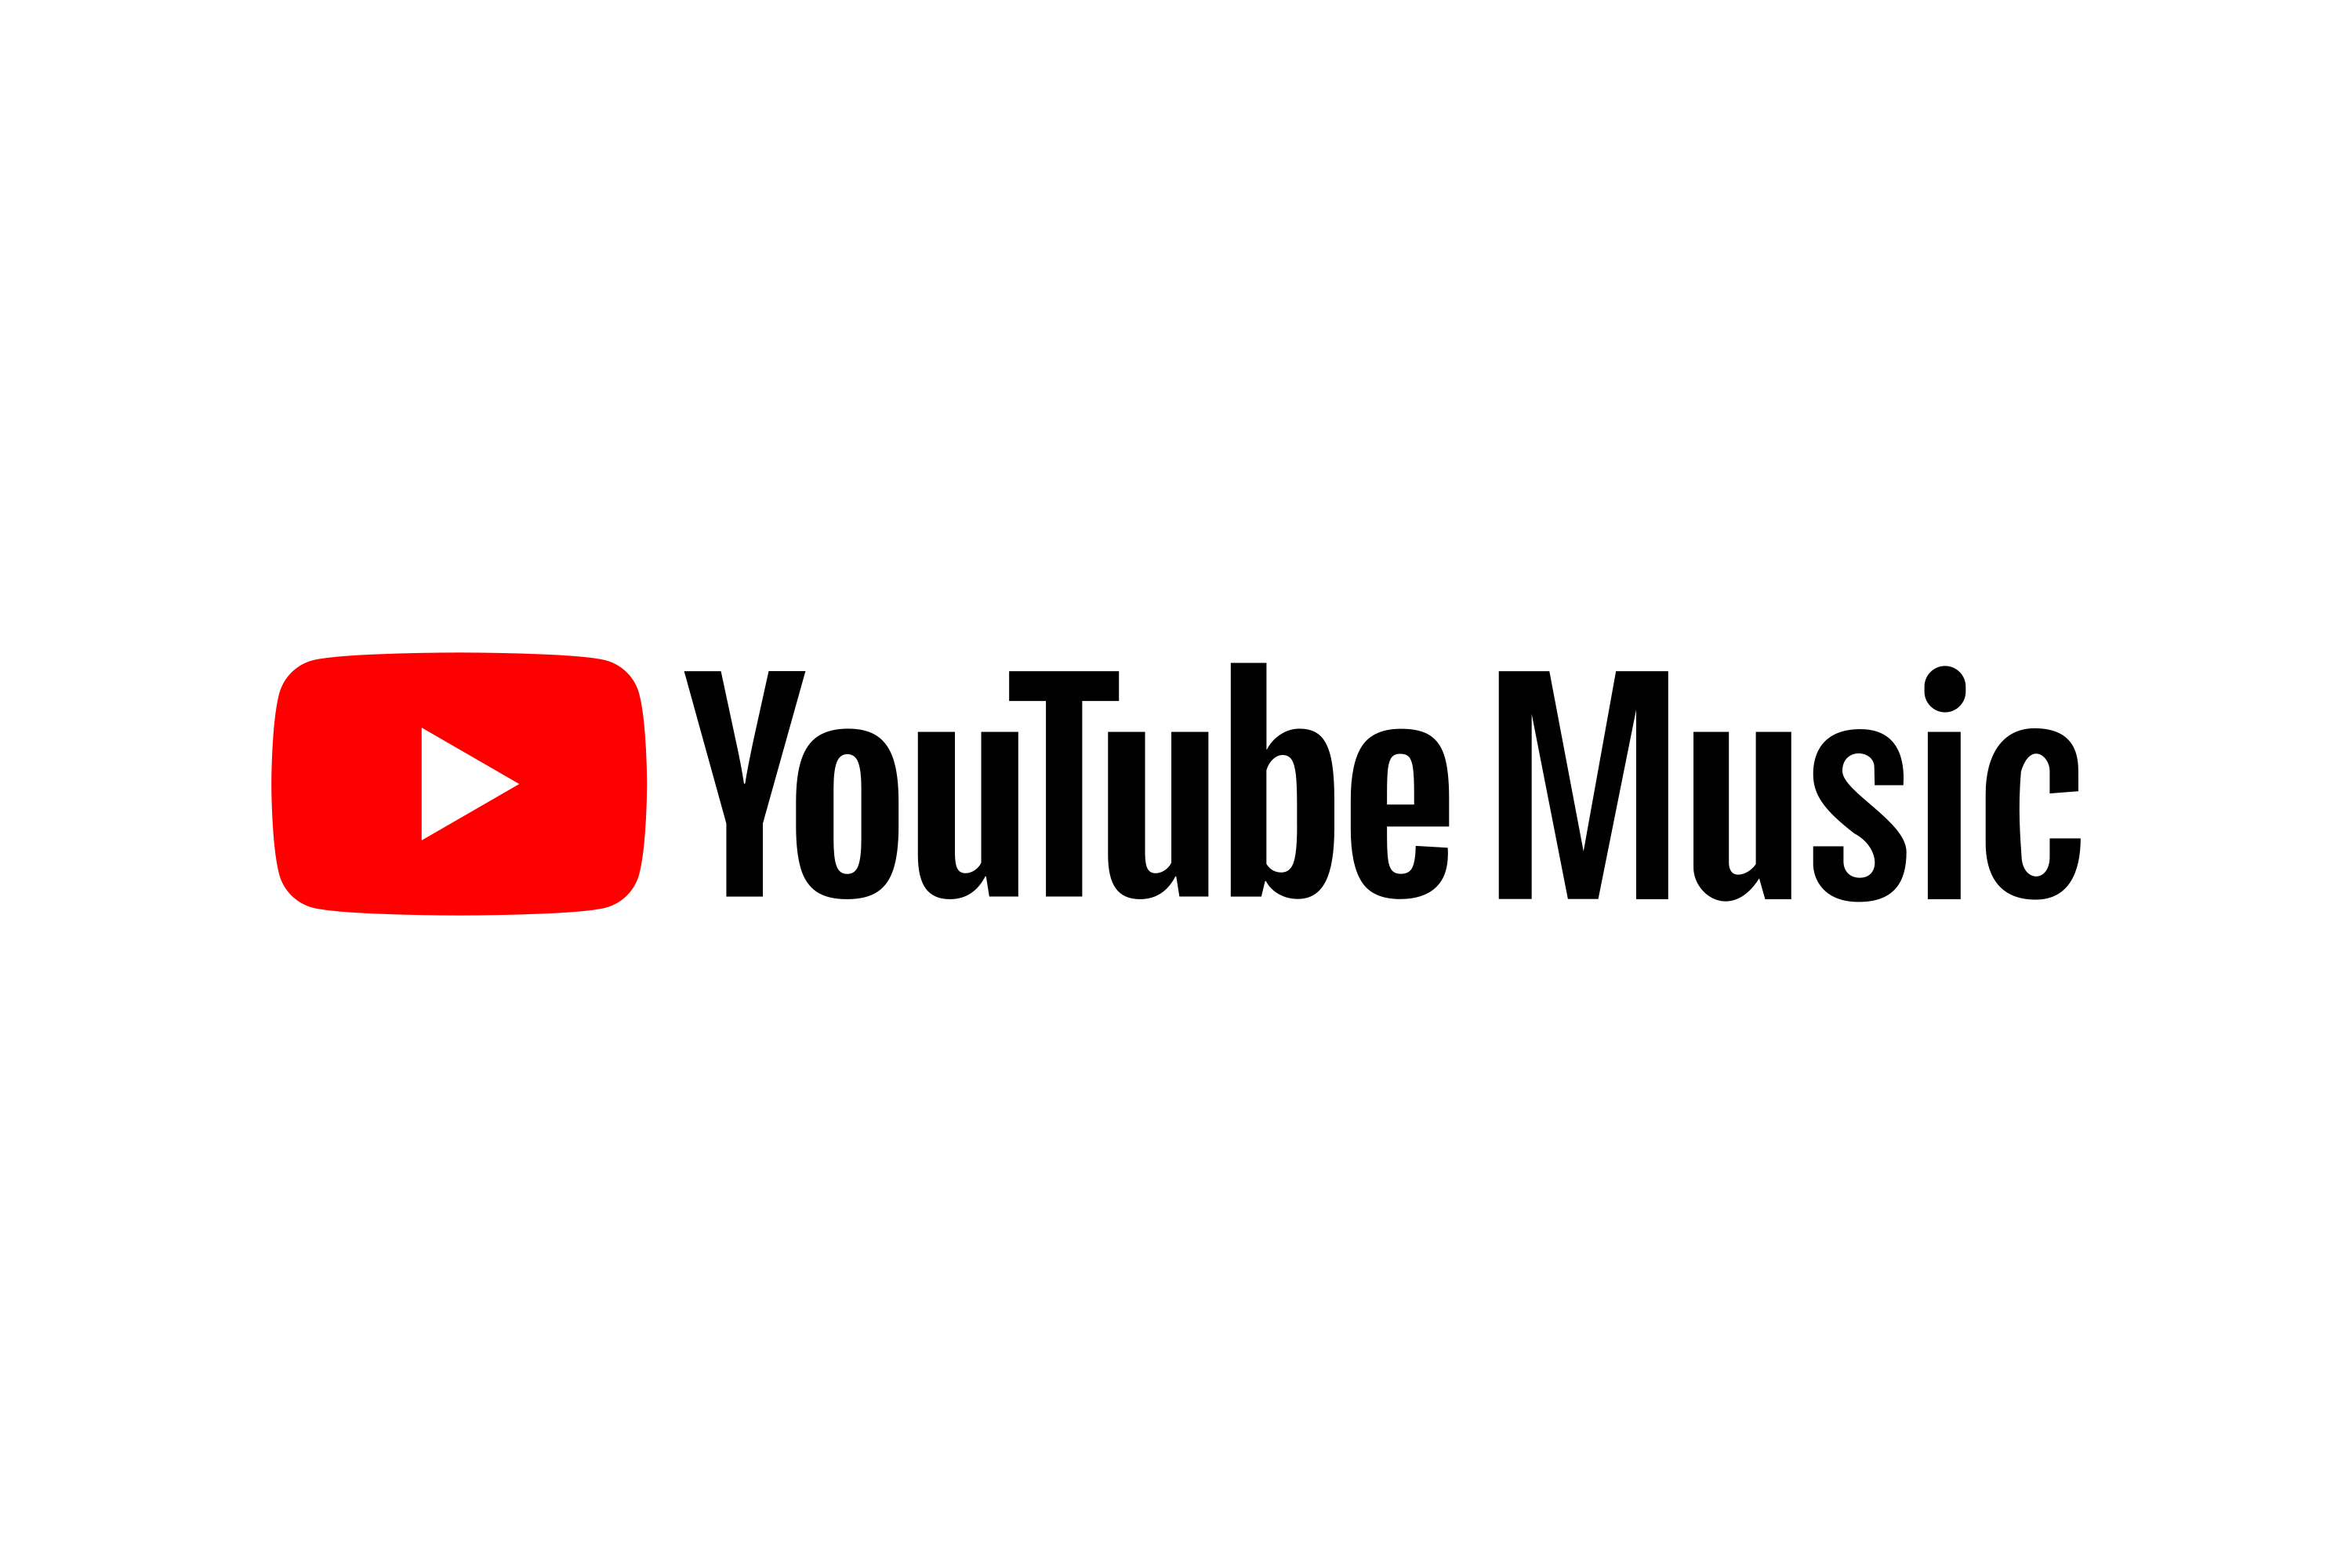 Download Youtube Music Logo In Svg Vector Or Png File Format Logo Wine